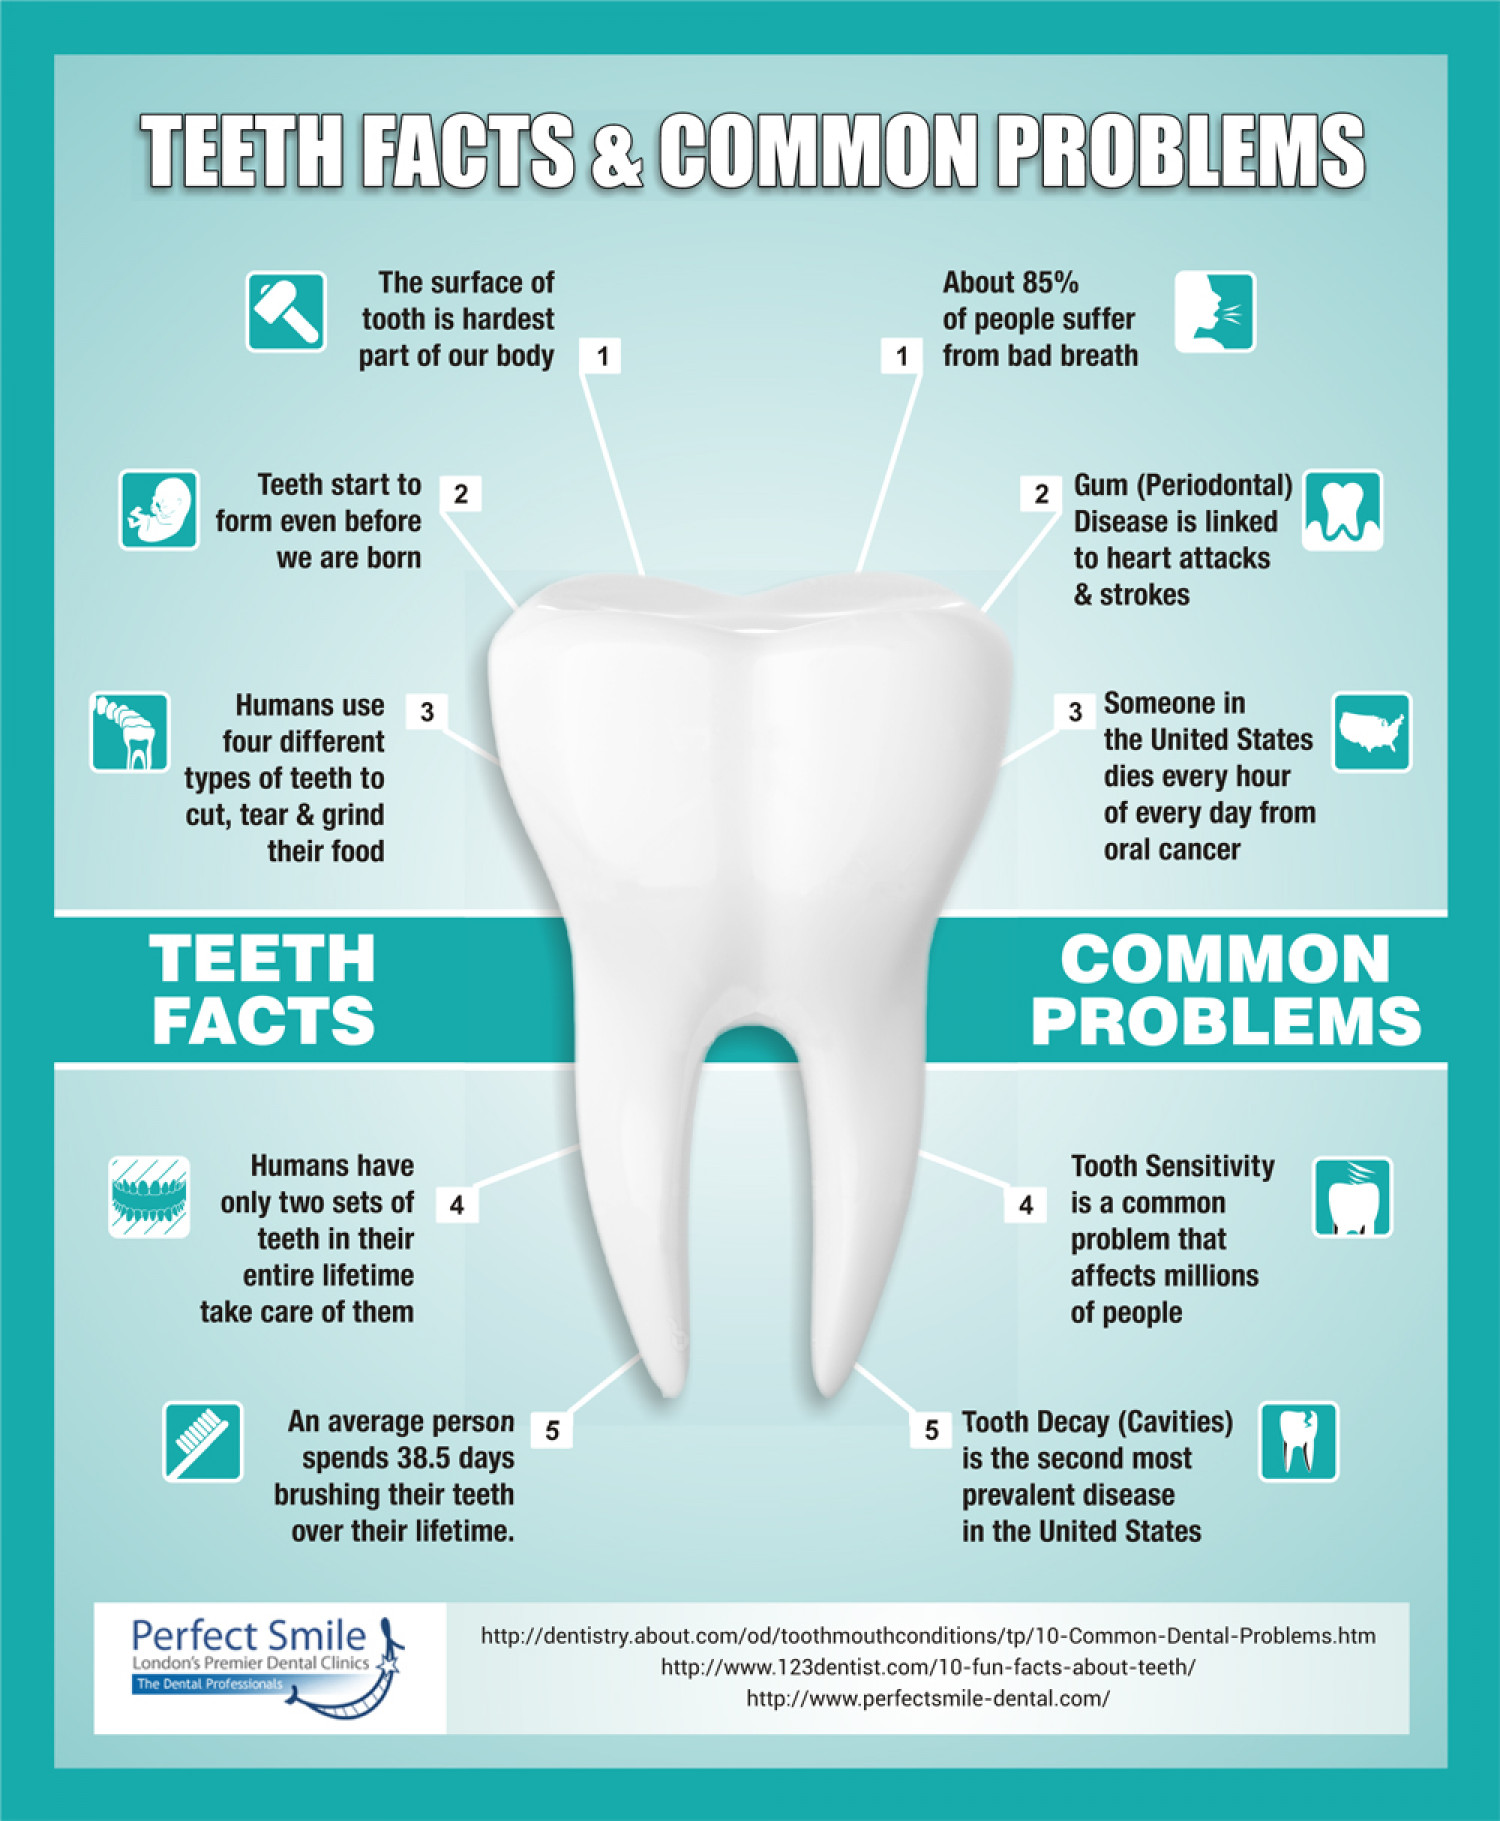 Teeth Facts & Common Problems | Visual.ly